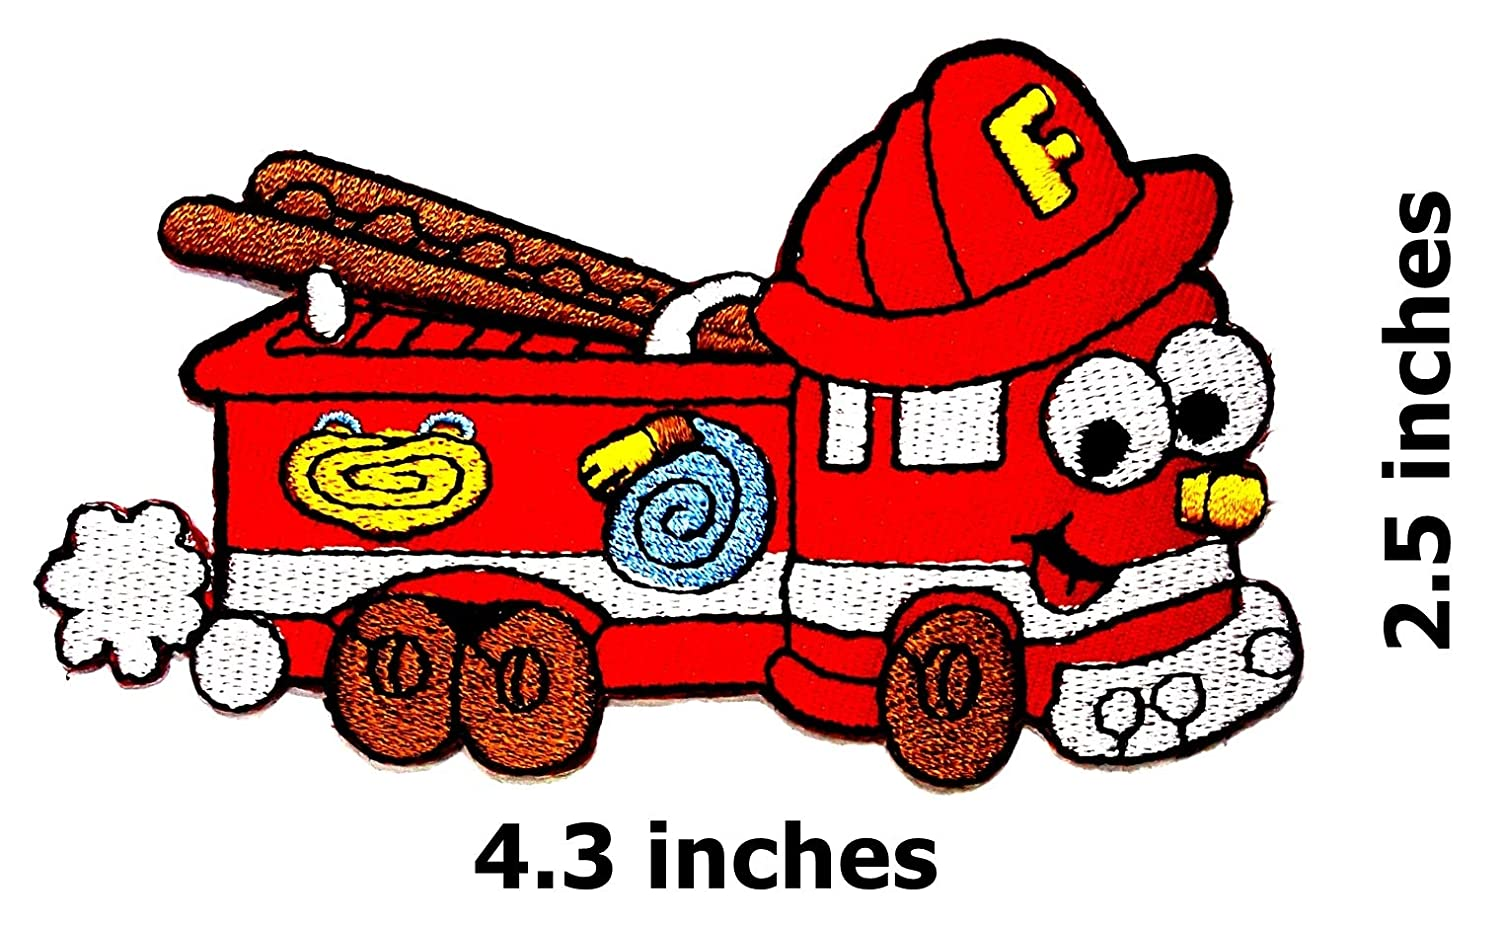 89dc08327ce Smiley Face Fireman Fire Engine Fire Truck Firefighter Rescue Bus Car  Cartoon Children Kid Patch Clothes Bag T-Shirt Jeans Biker Badge Applique  Iron on/Sew ...